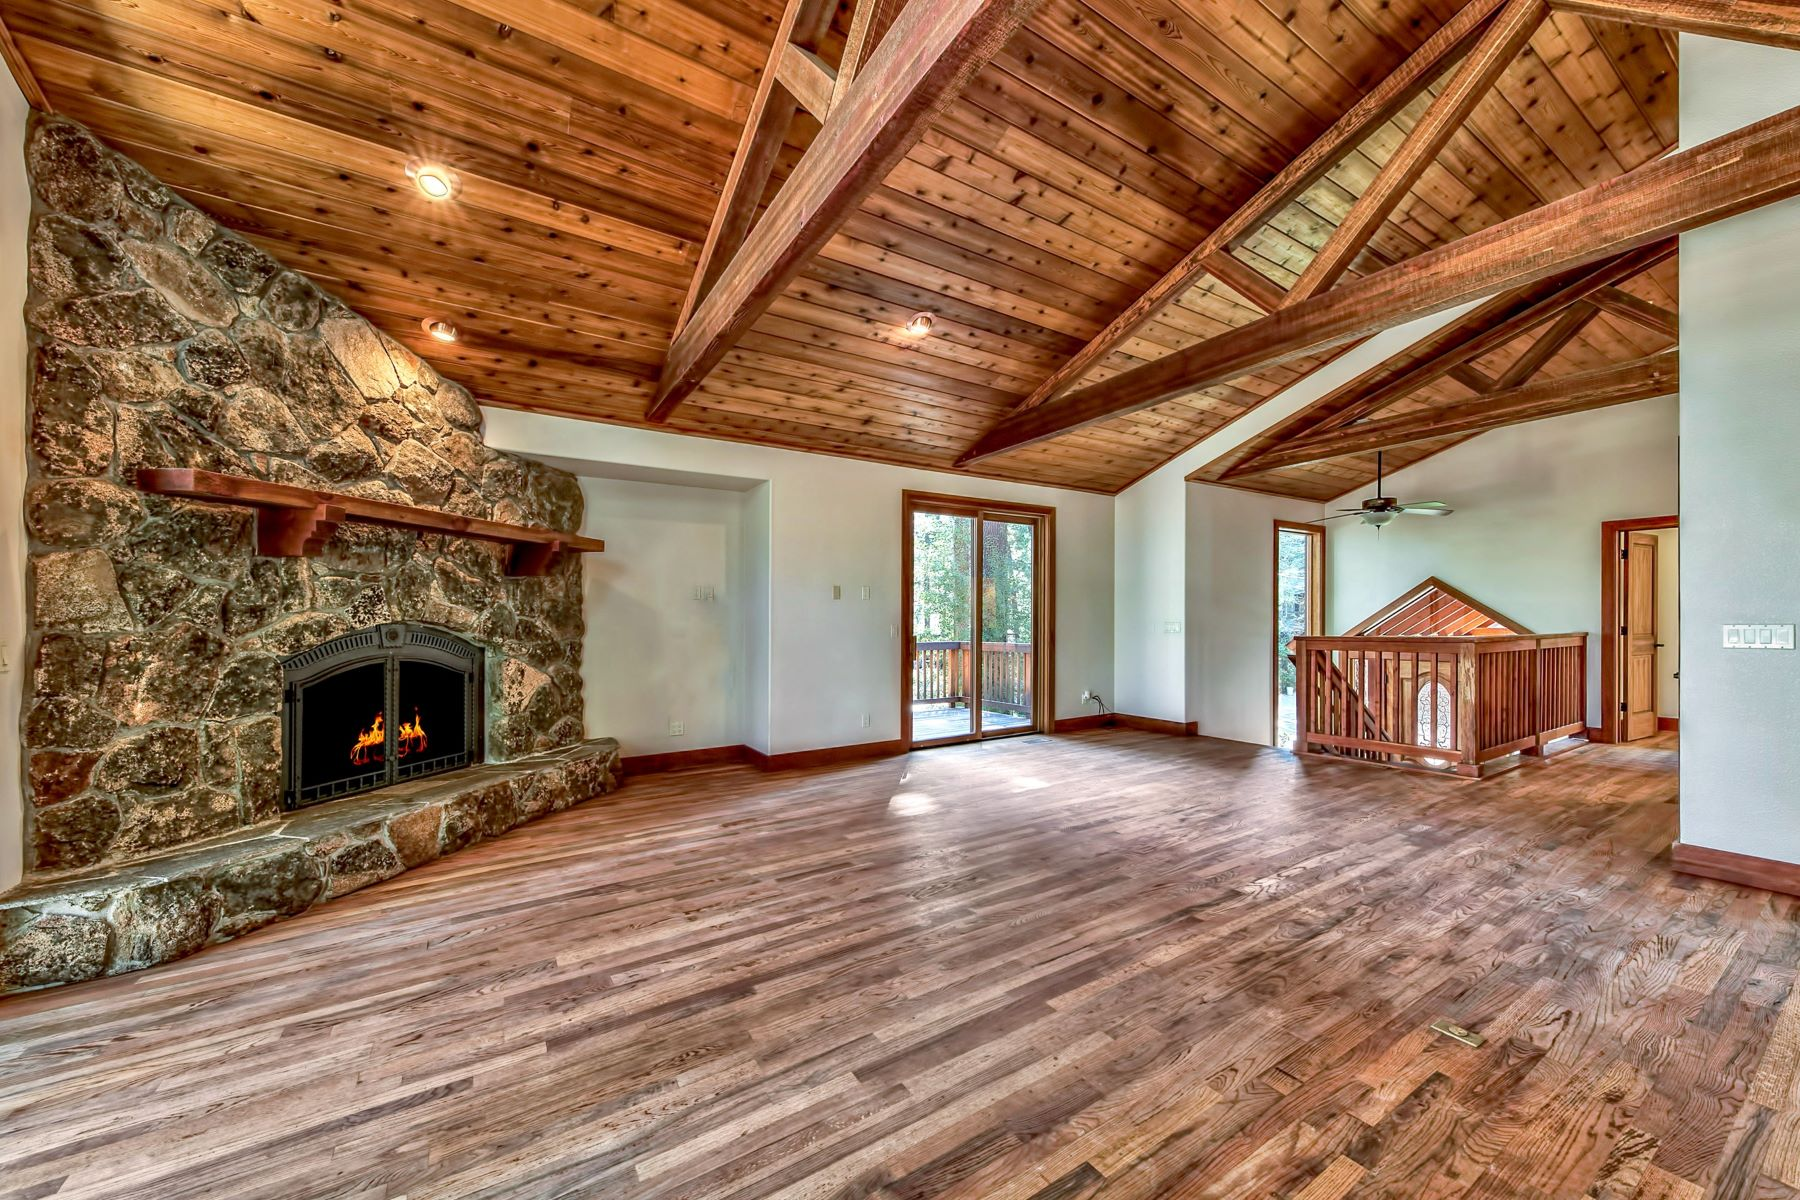 Additional photo for property listing at 945 Merced Ave, South Lake Tahoe, CA 96150 945 Merced Ave South Lake Tahoe, California 96150 United States